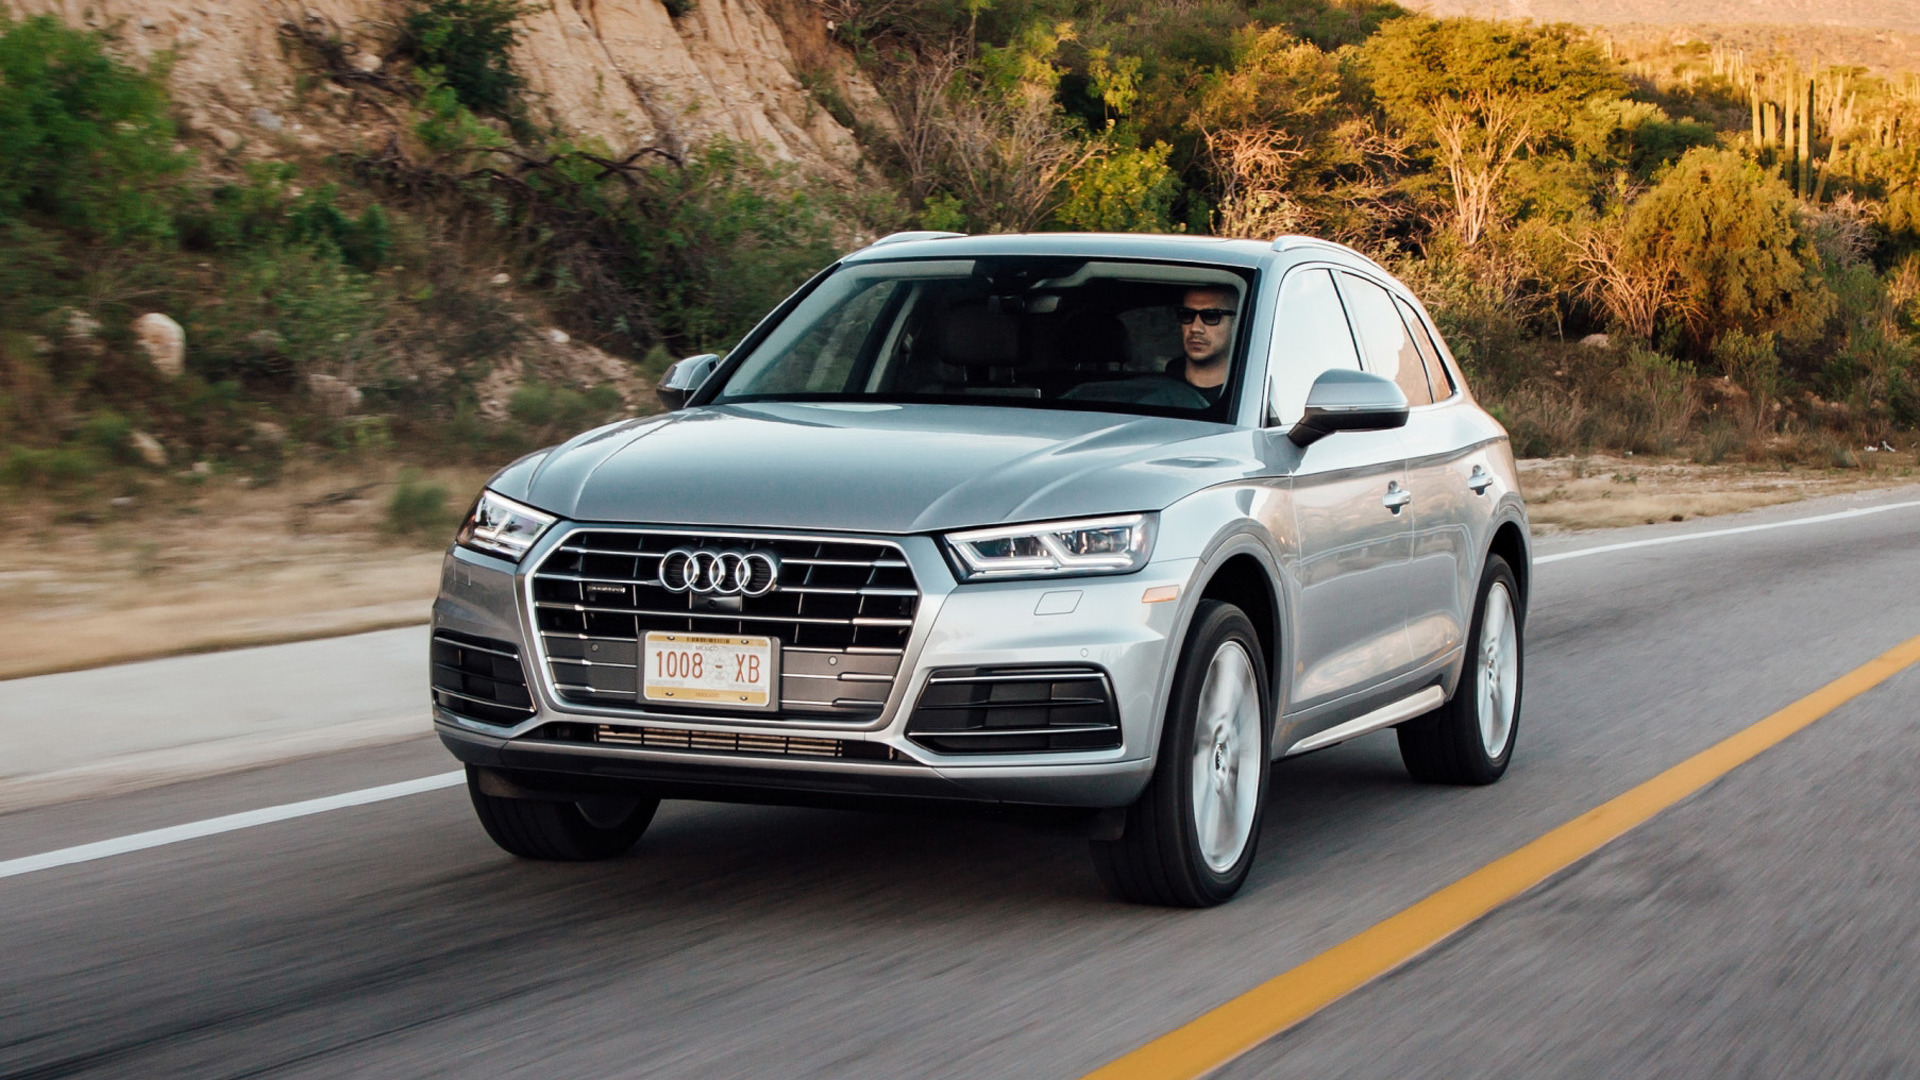 2018 audi q5 redefines suv new standards again speed carz. Black Bedroom Furniture Sets. Home Design Ideas